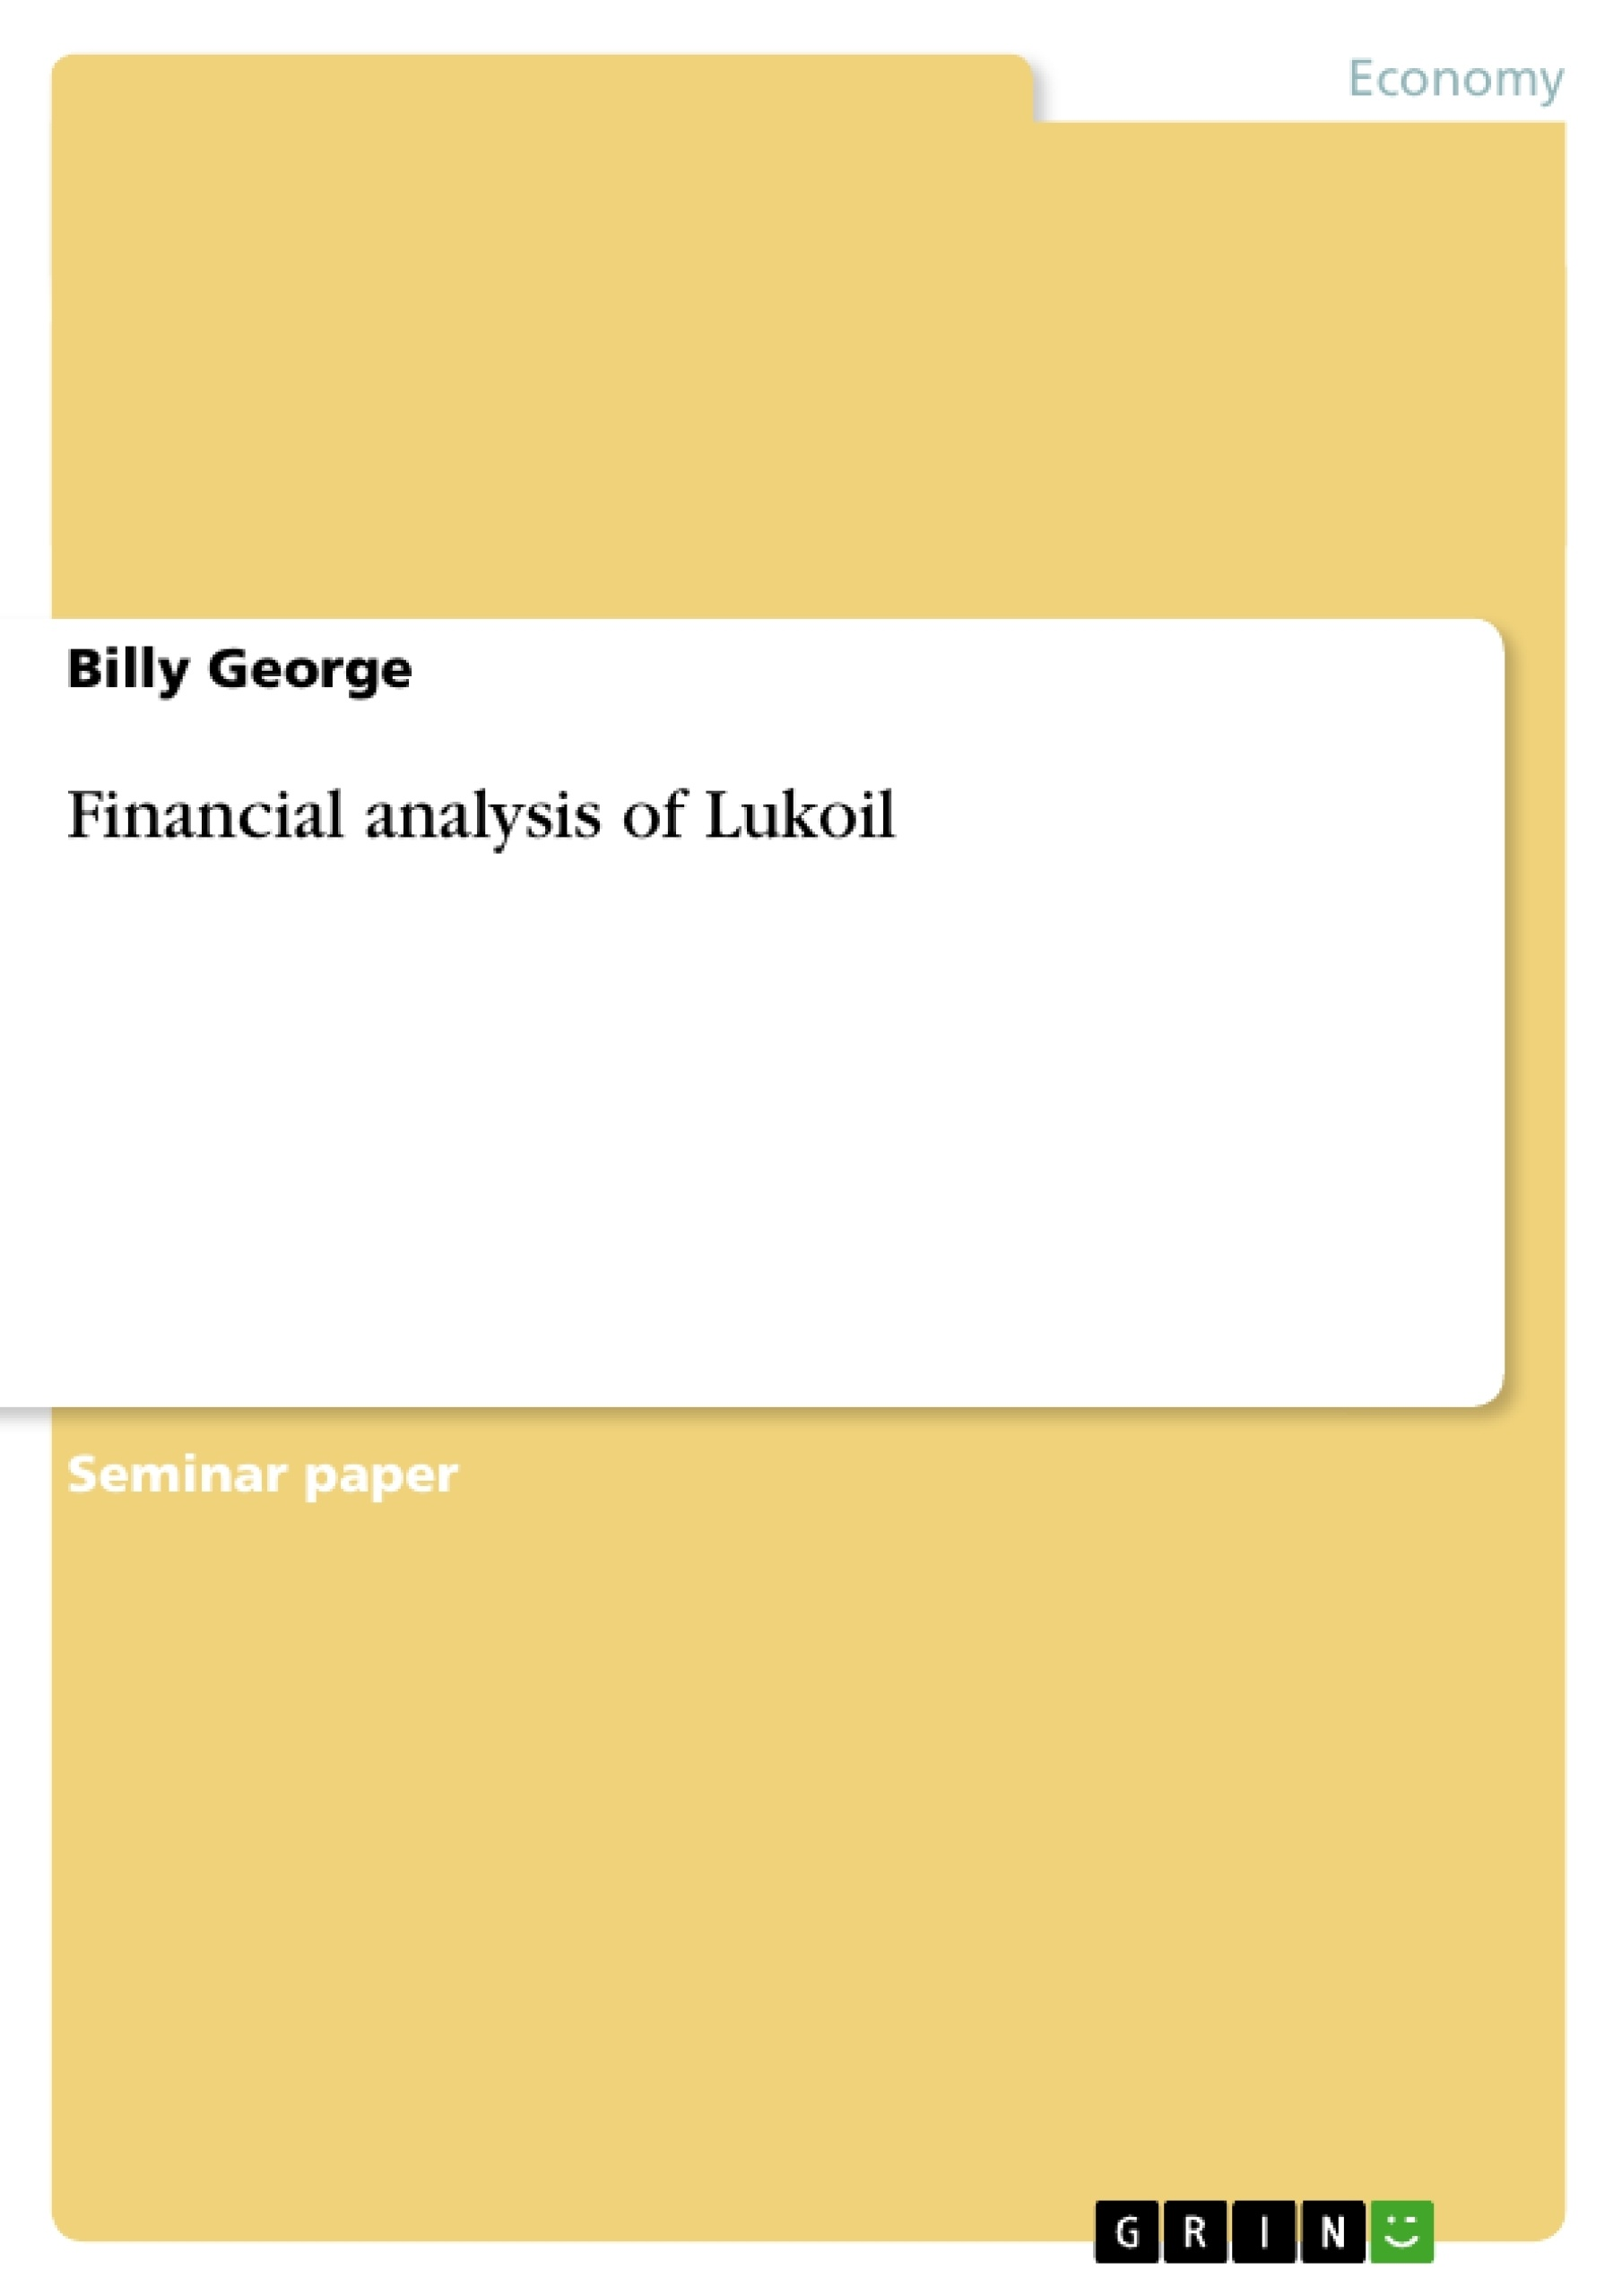 term paper financial analysis